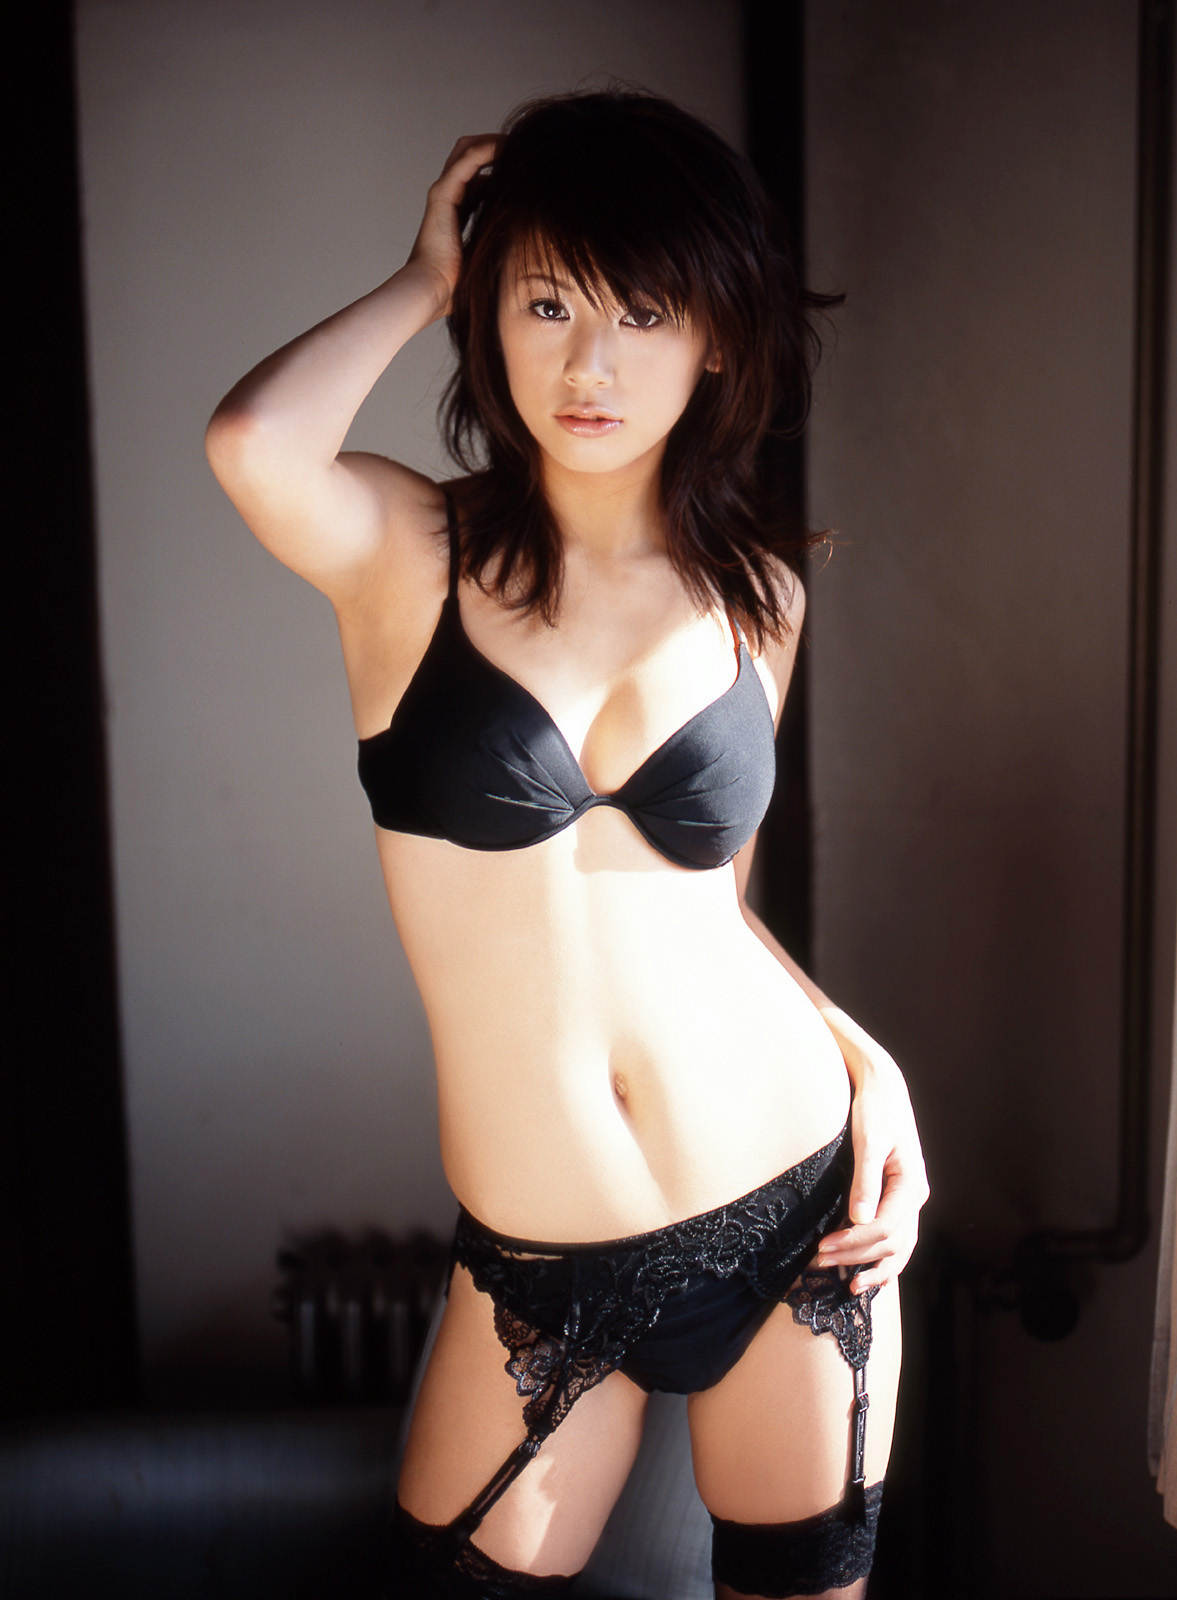 hamada asian girl personals Watch japanese pussy porn videos for free, here on pornhubcom discover the growing collection of high quality most relevant xxx movies and clips no other sex tube is more popular and features more japanese pussy scenes than pornhub browse through our impressive selection of porn videos in hd quality on any device you own.